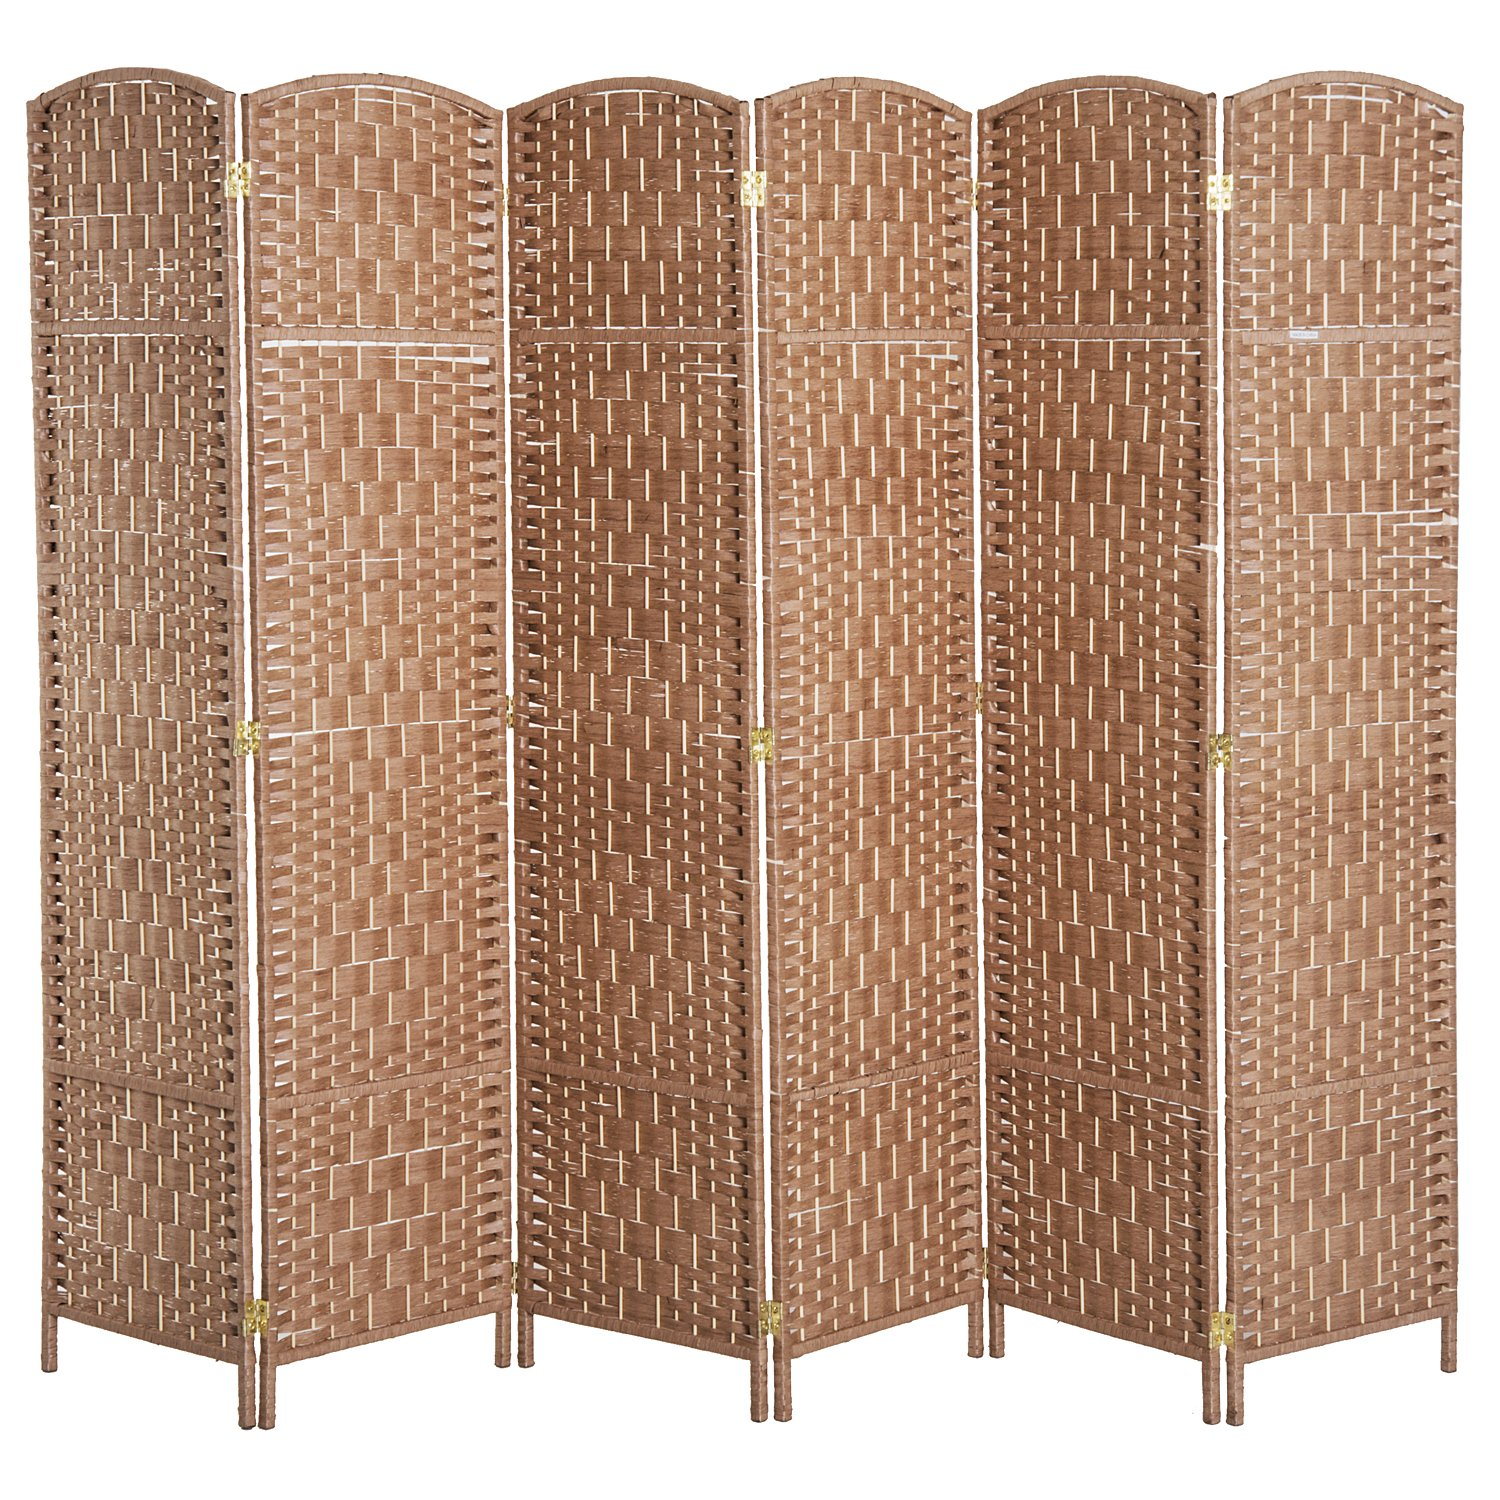 Get Quotations Homcom 6 Tall Diamond Weave Woven Fiber Room Divider Natural Wood Panel